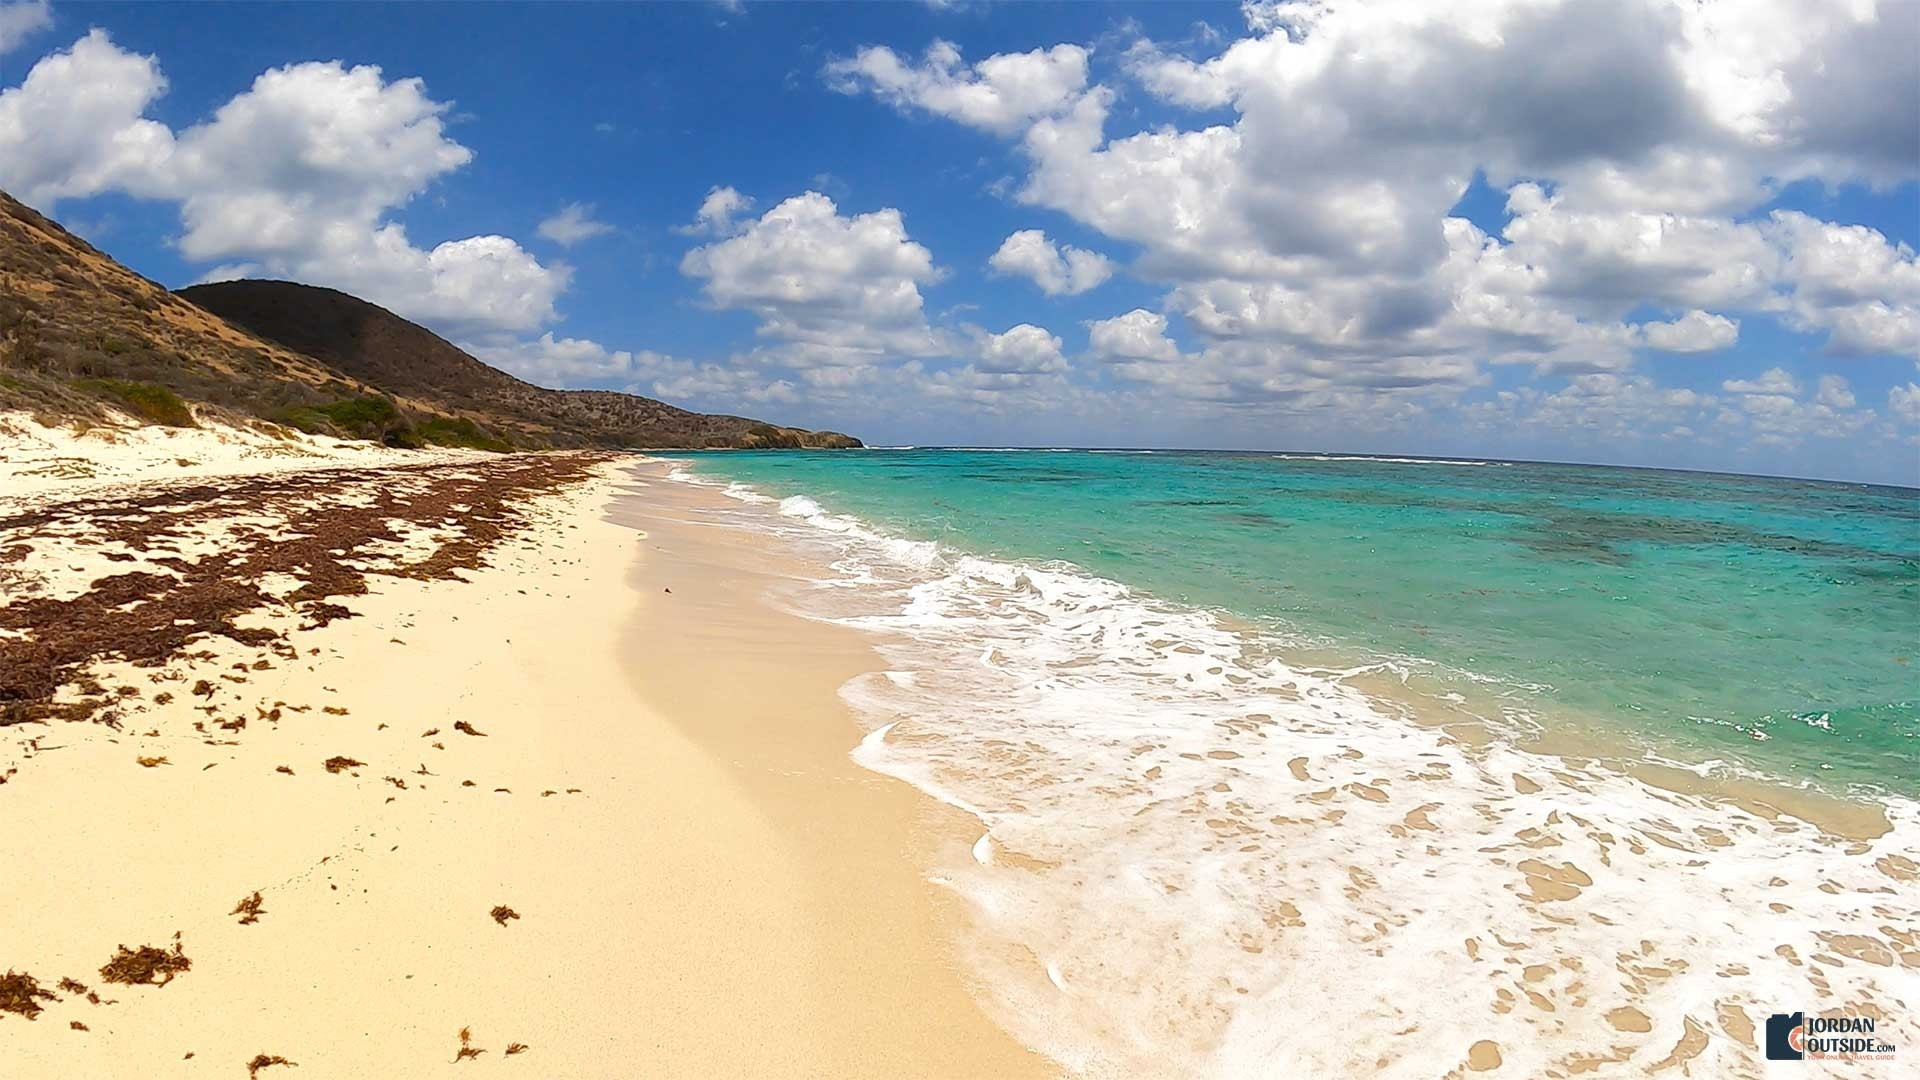 The sand and view of Isaac's Bay Beach, St. Croix